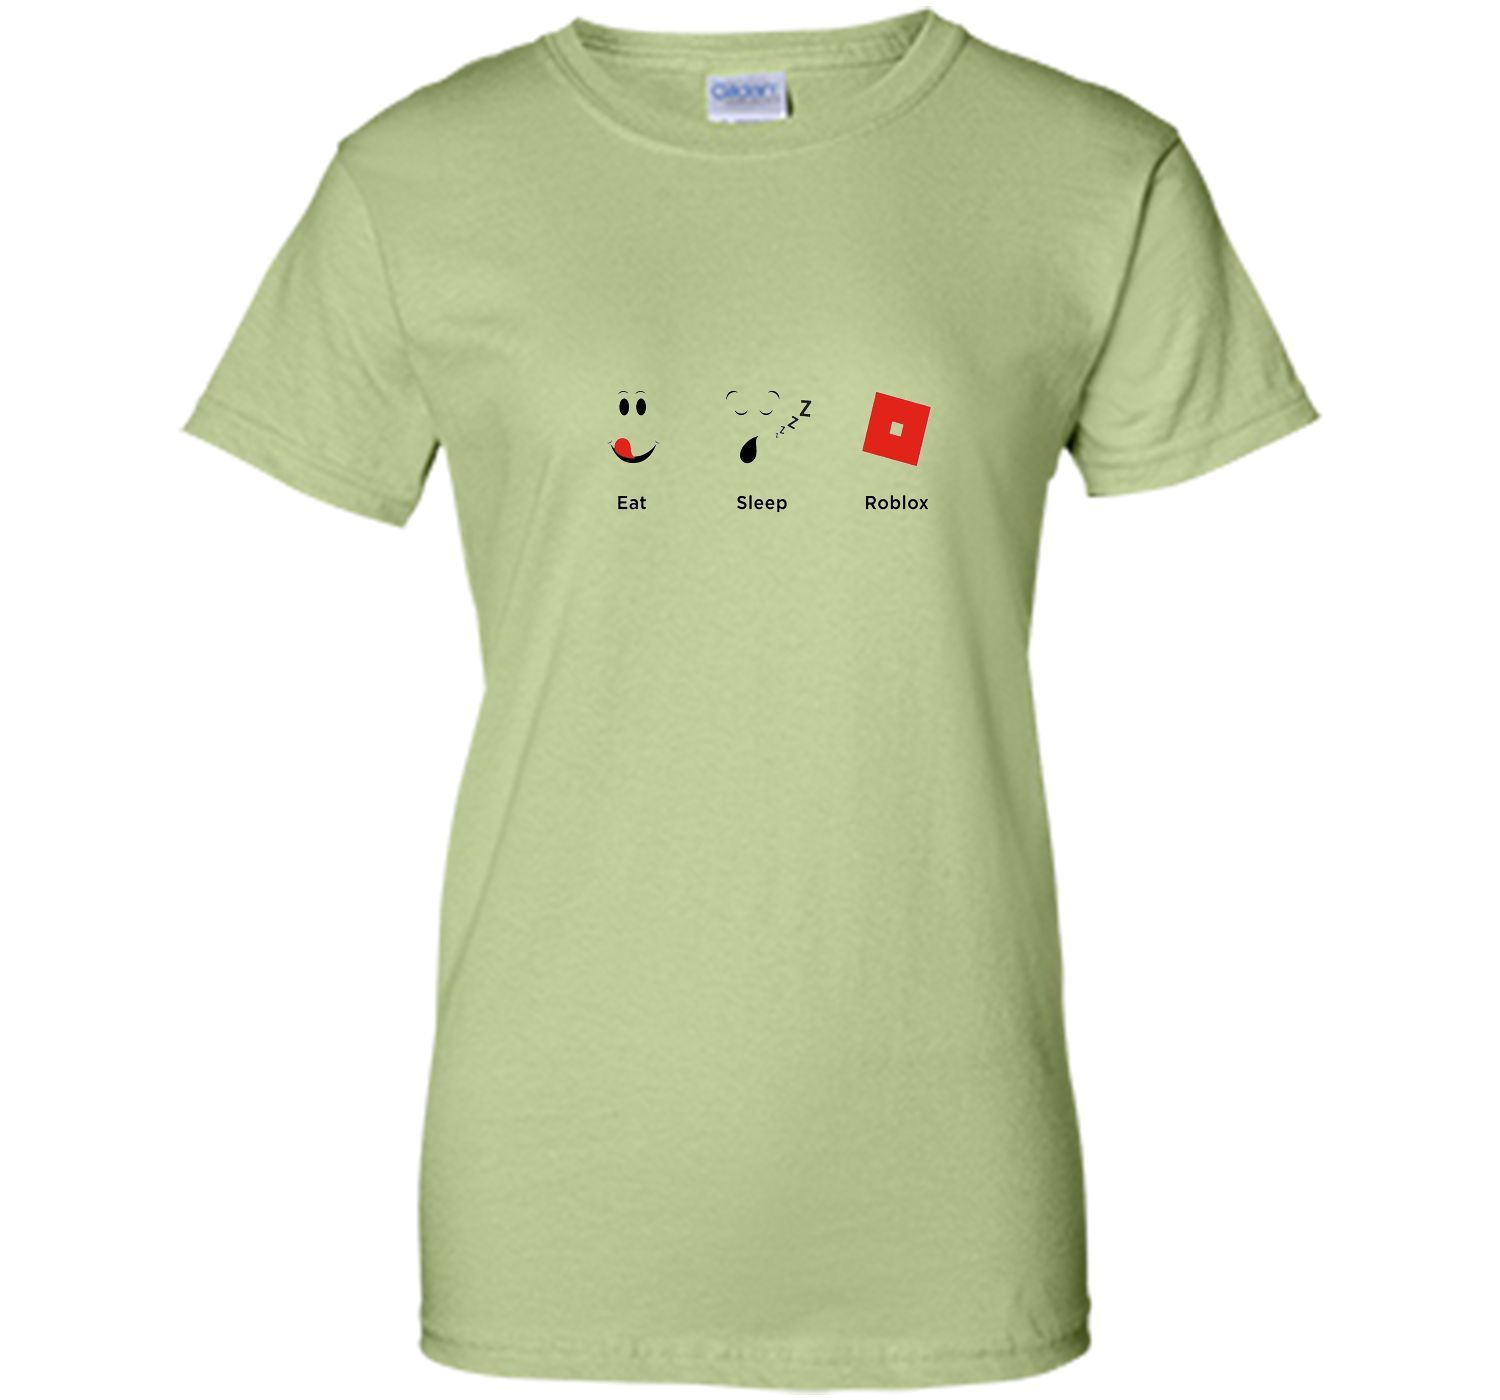 Eat. Sleep. Roblox. T-shirt